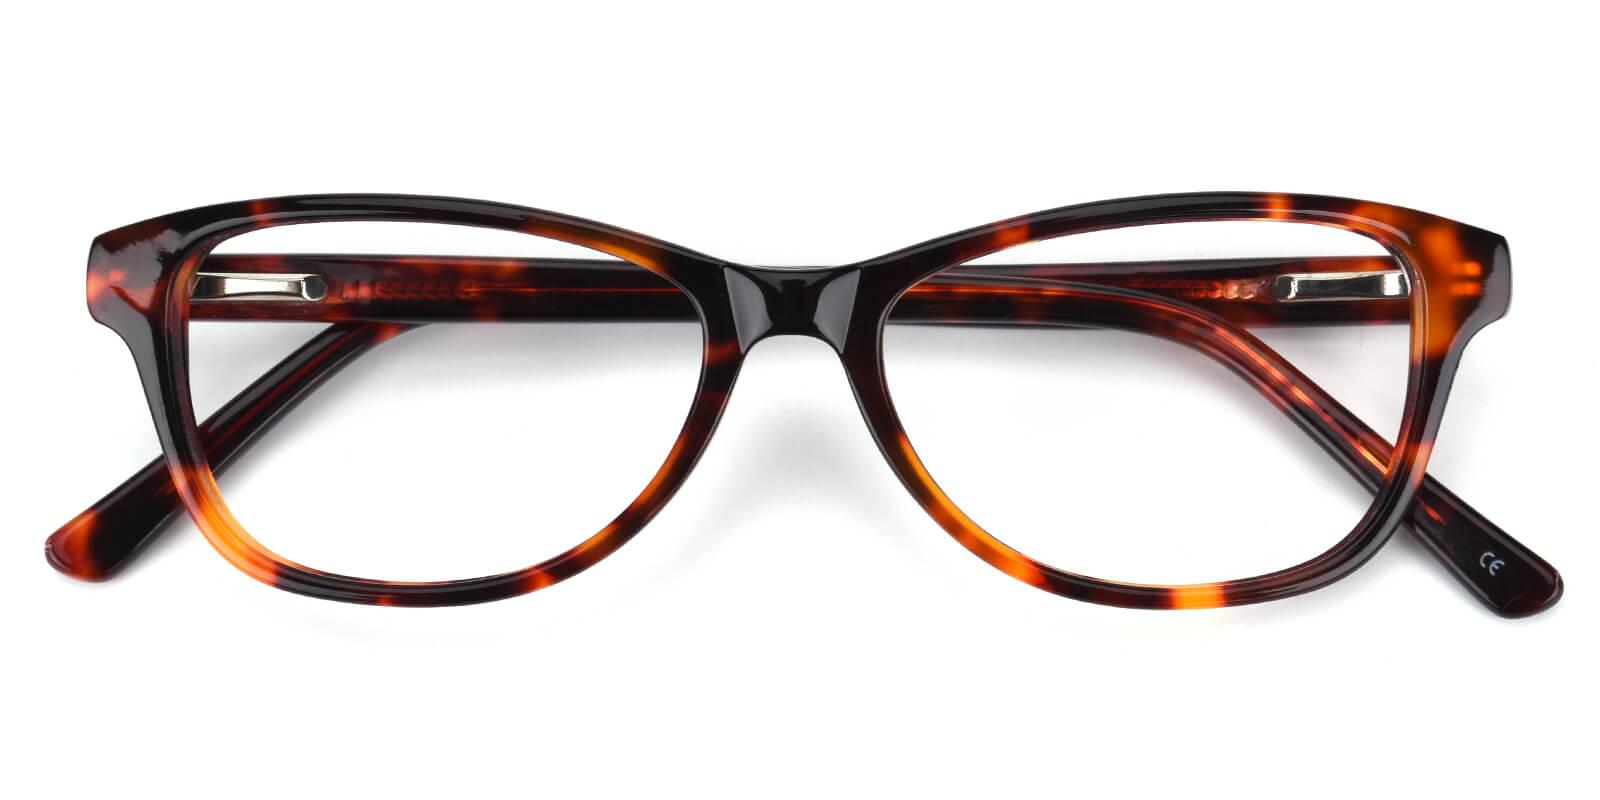 Marind-Tortoise-Cat-Acetate-Eyeglasses-detail